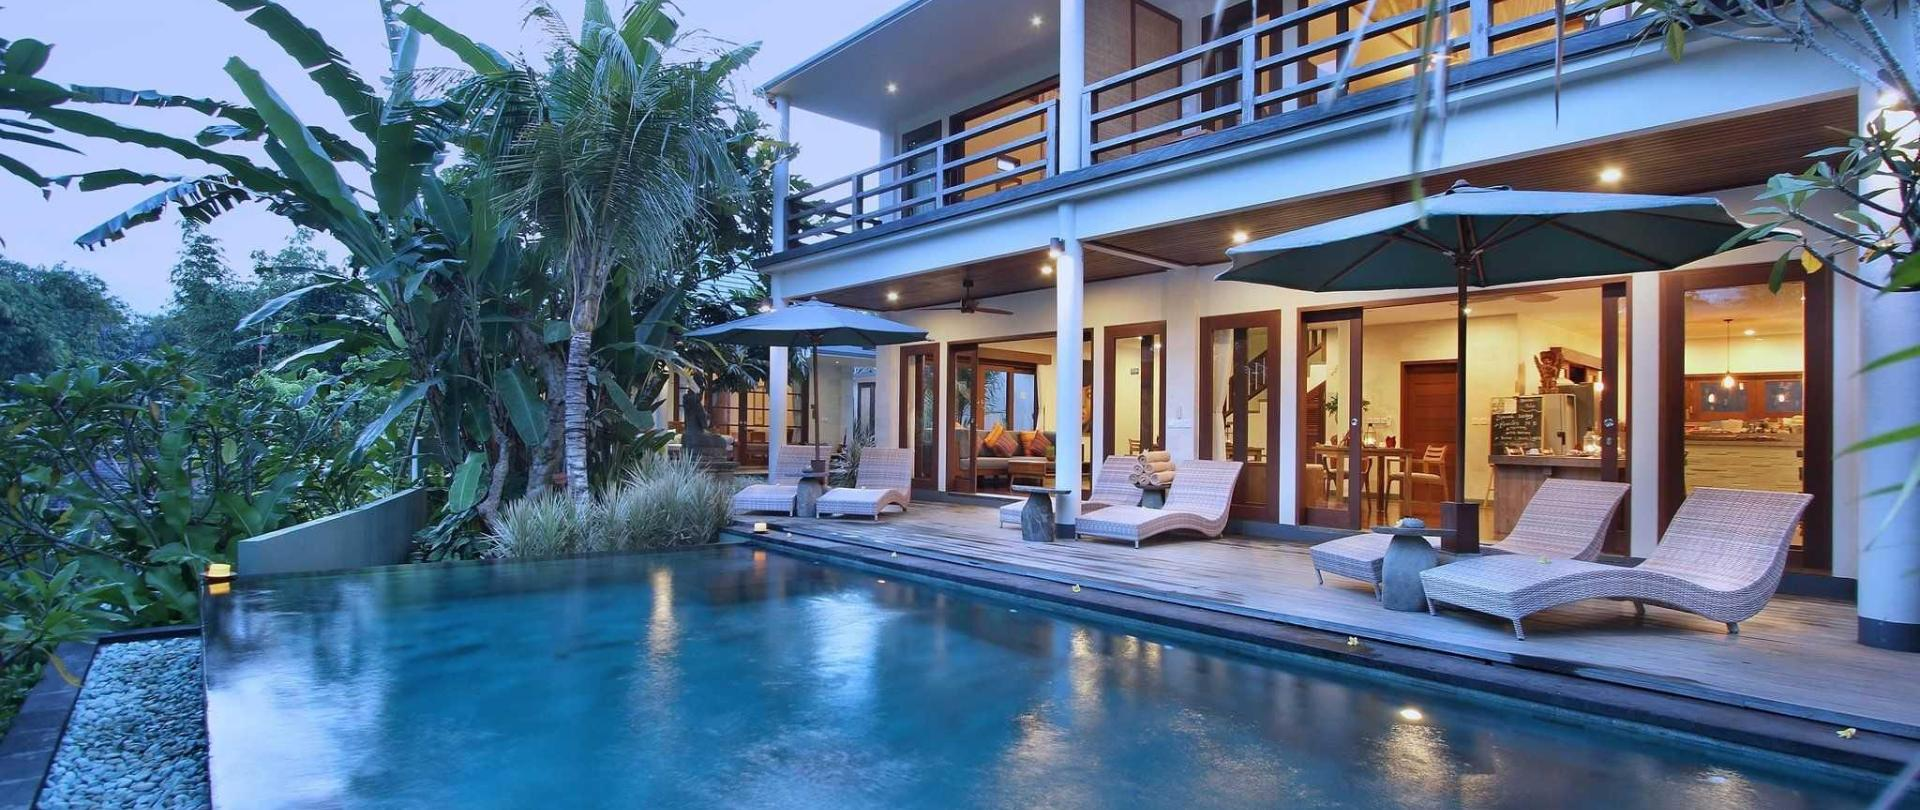 D'Legon Luxury Villas - Only One Luxury Villas in Ubud Bali Indonesia   D'Legon Luxury Villas  Ubud  Indonesia